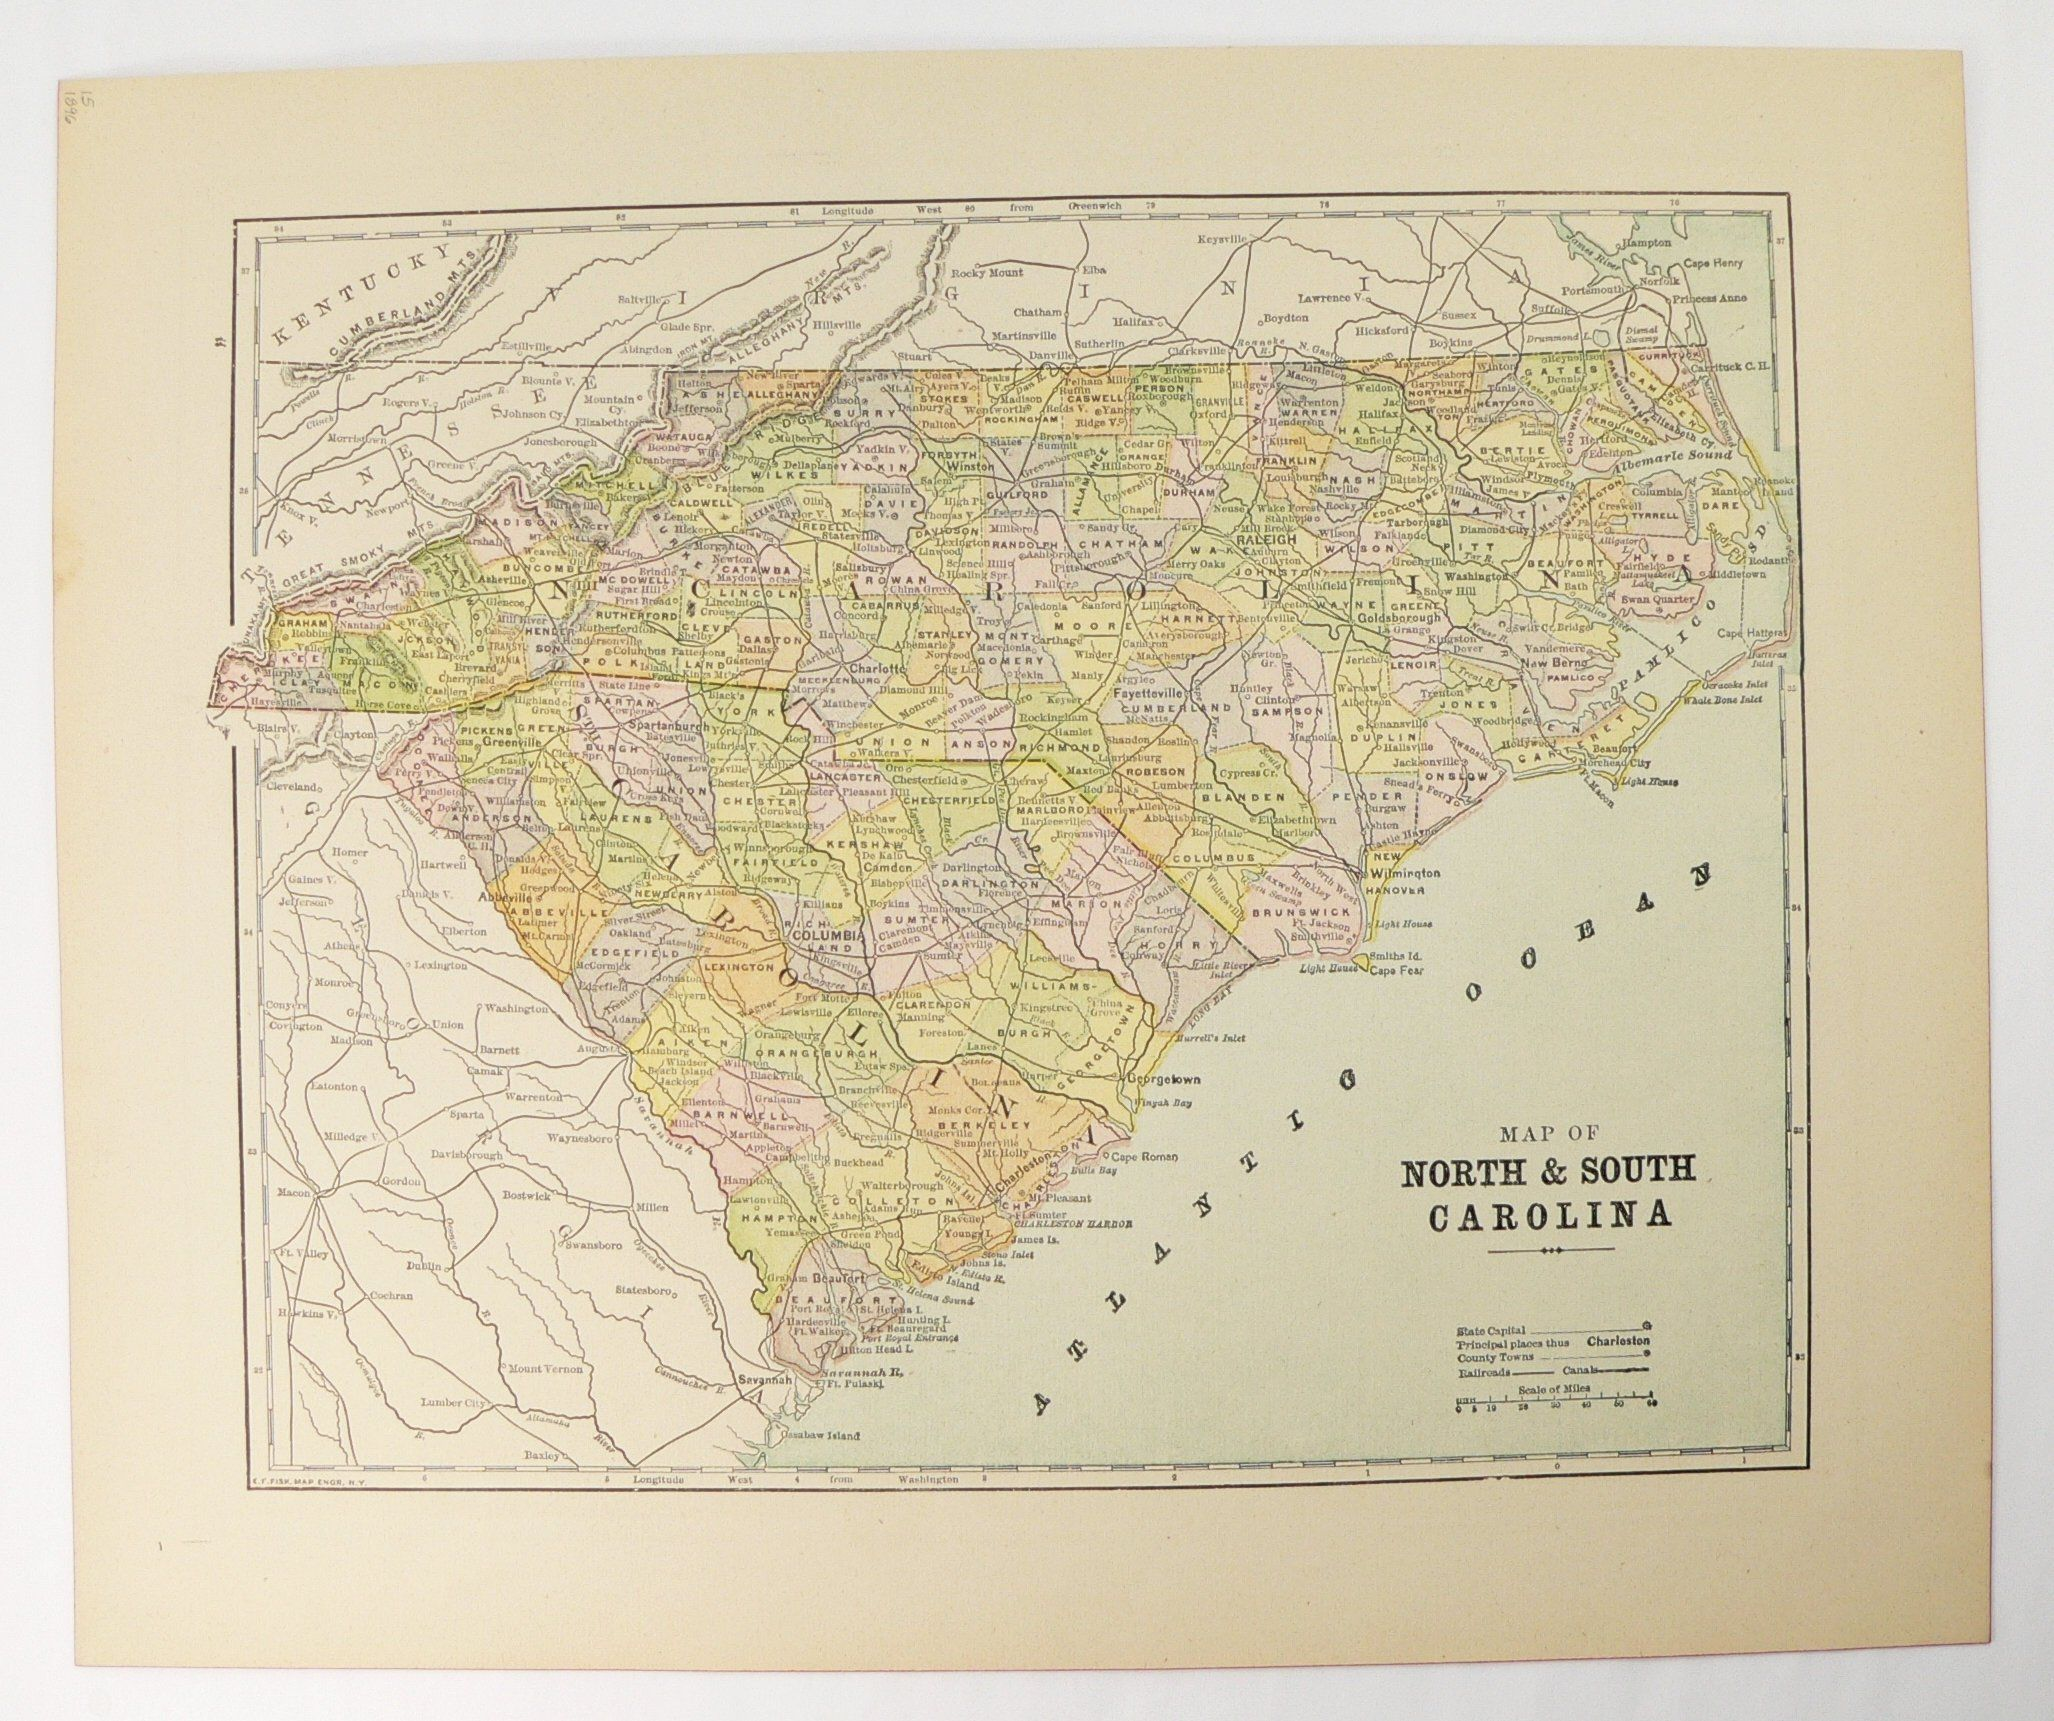 1896 North Carolina and South Carolina Map, Original Vintage ...